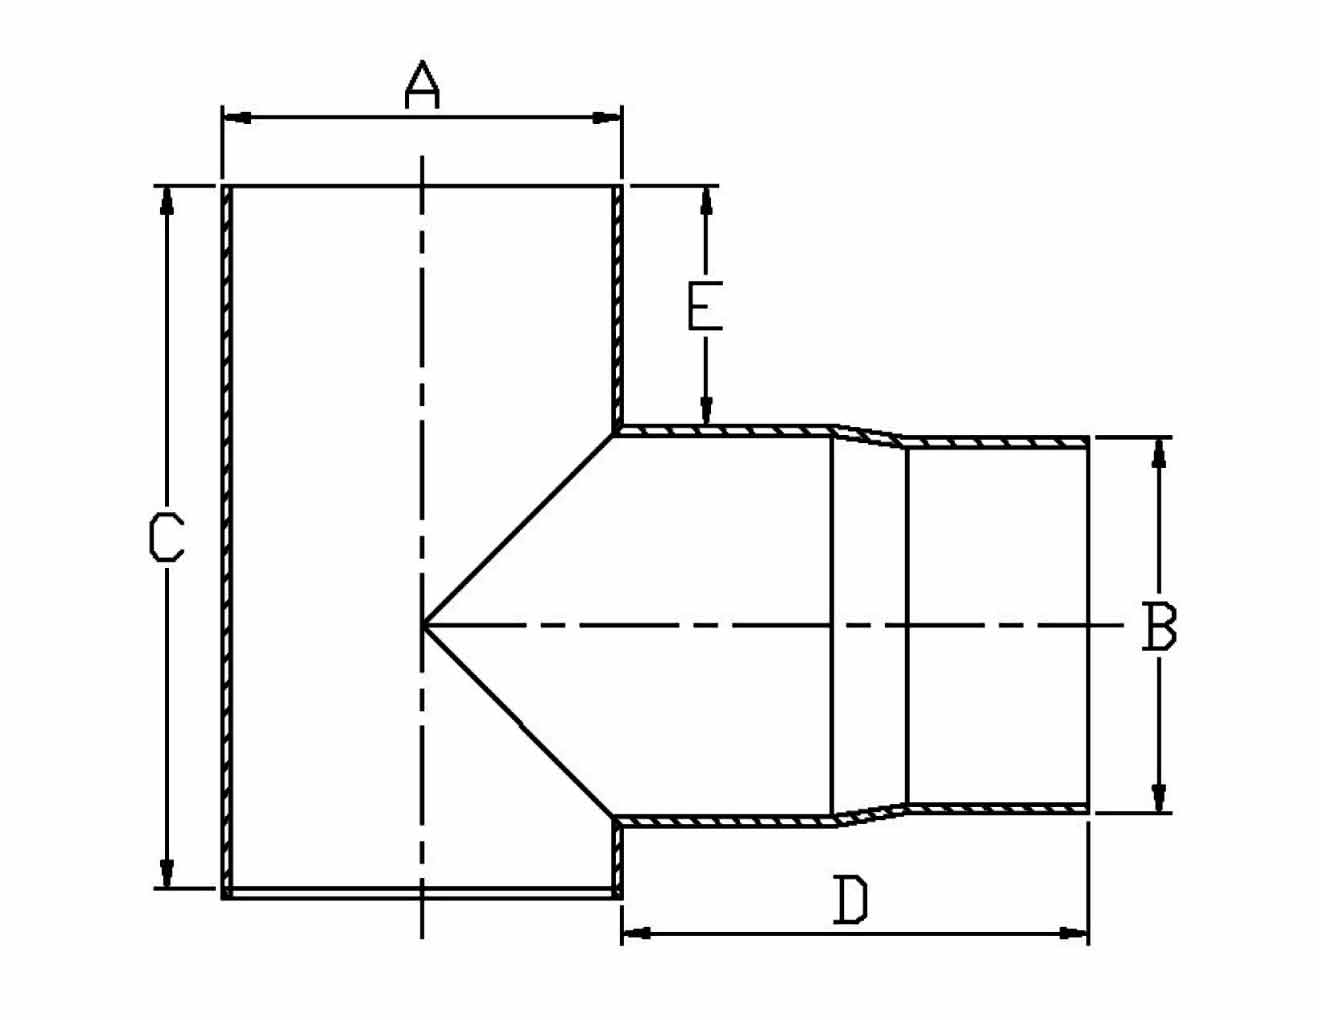 hight resolution of 90 degree tee with soot trap diagram